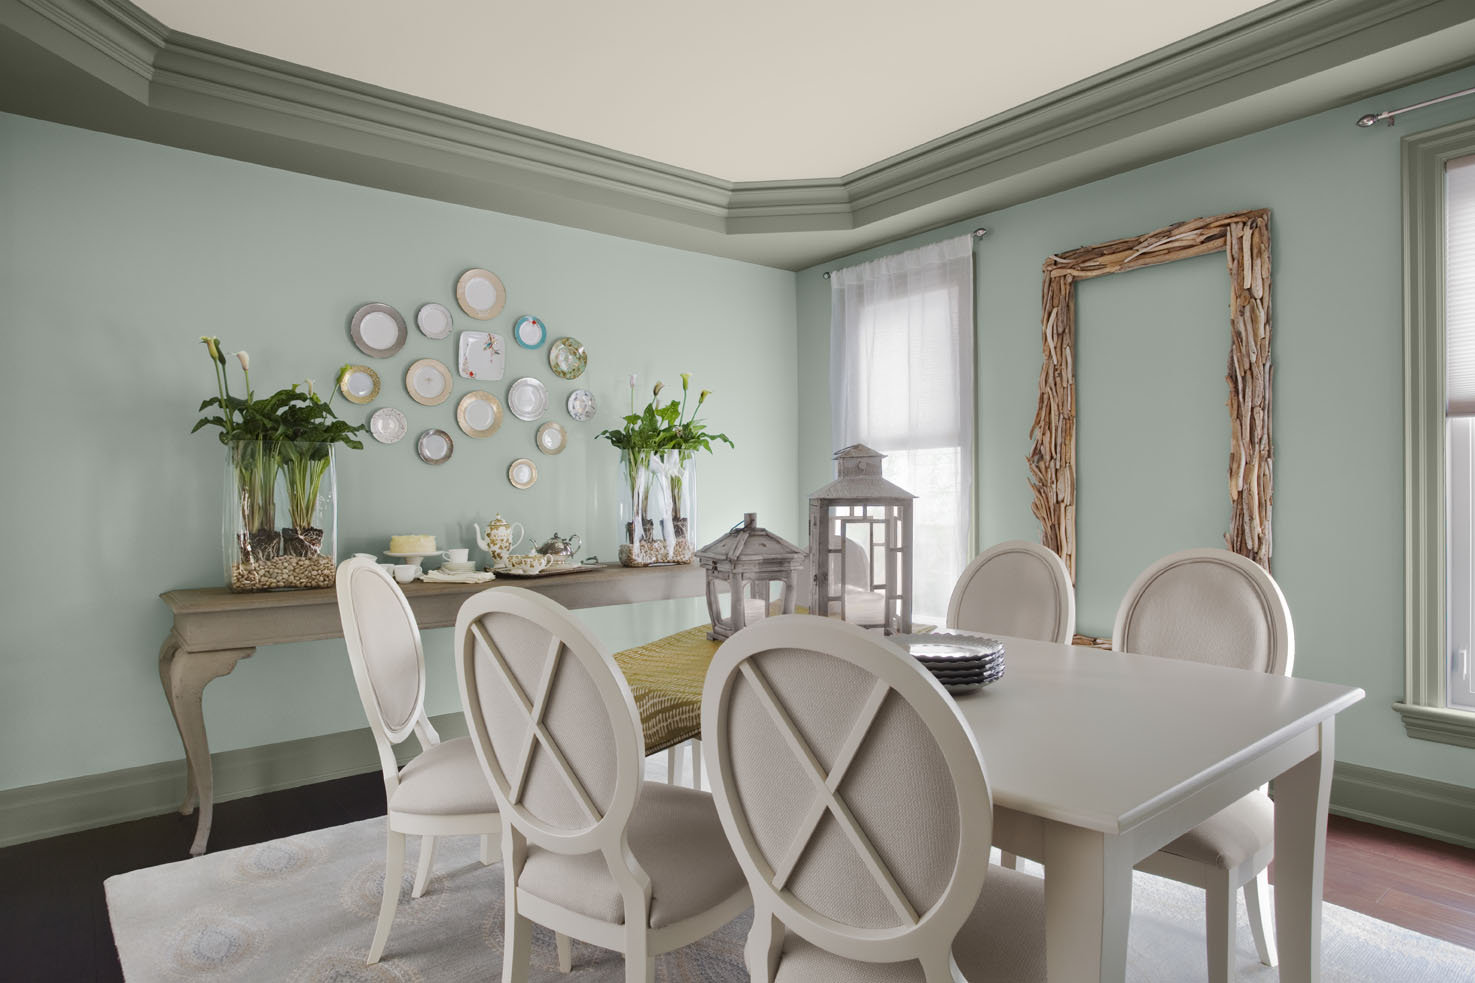 Blue Paint For Dining Room: Part 1 Of 2012 Paint Colour Trends Series: Wythe Blue